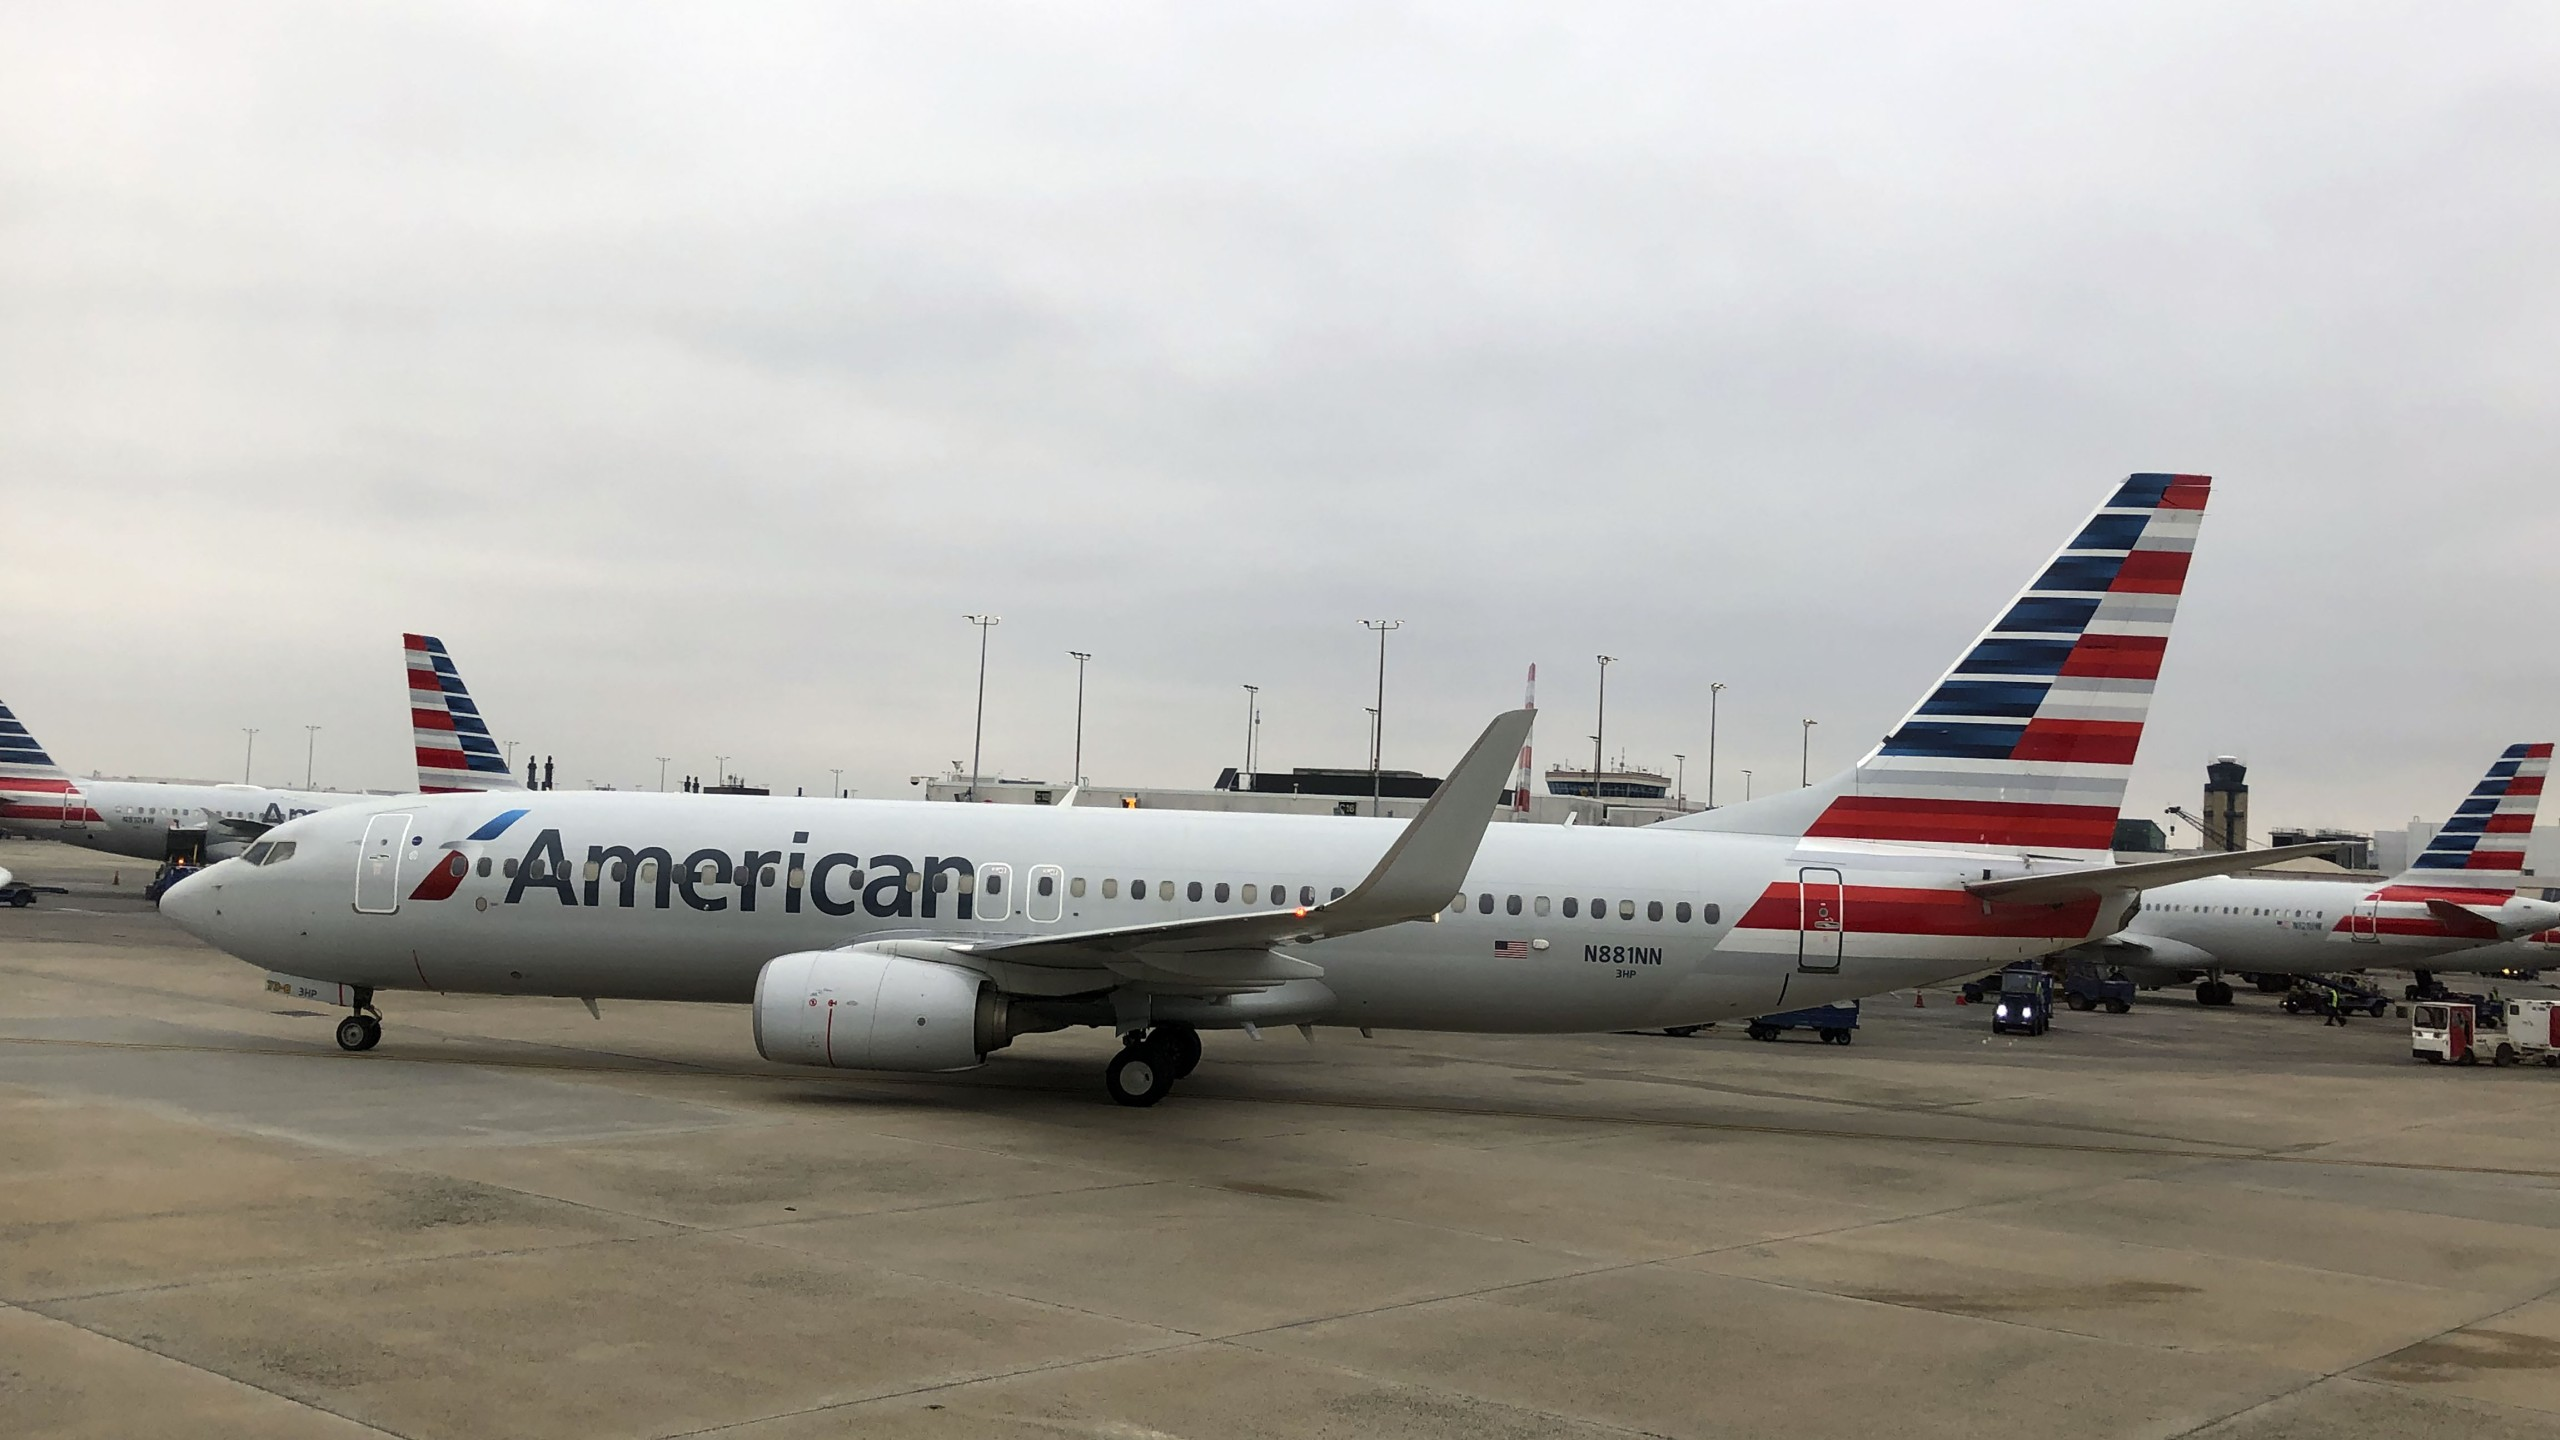 An American Airlines plane is seen on Feb. 17, 2019 at Charlotte International Airport in Charlotte, North Carolina. (Credit: Daniel Slim / AFP/Getty Images)